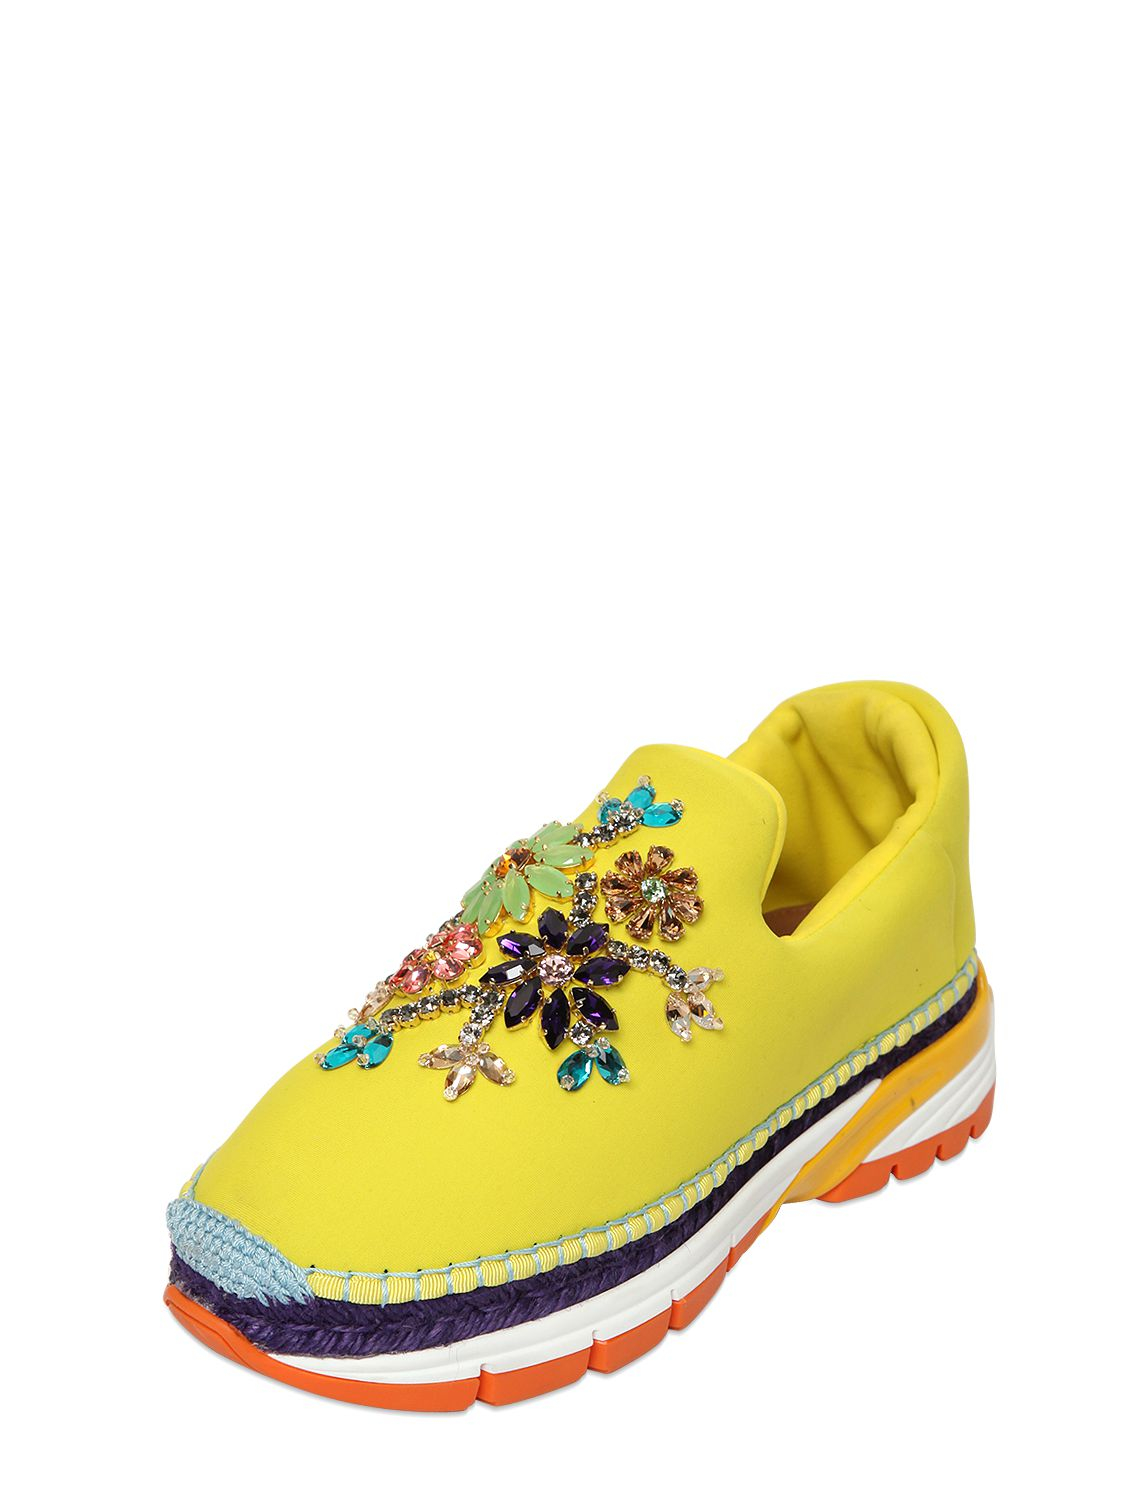 dolce gabbana 30mm jeweled neoprene sneakers in yellow. Black Bedroom Furniture Sets. Home Design Ideas